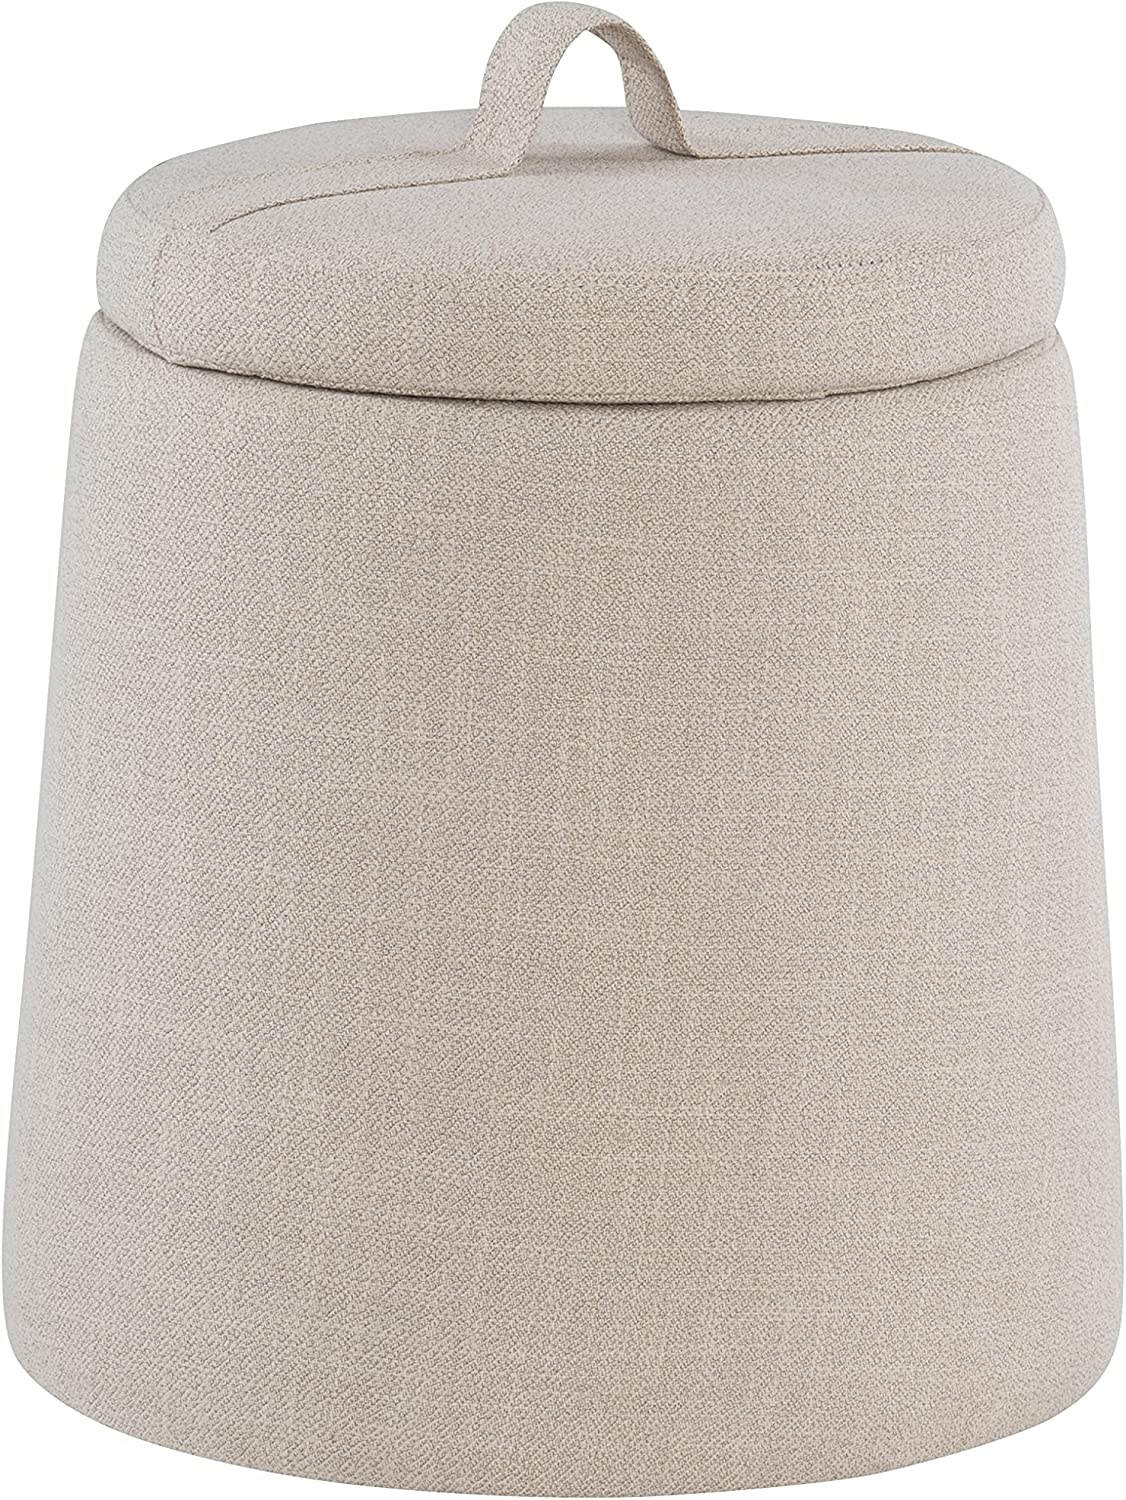 Linon Home Décor Beige National products Ottom Storage Max 76% OFF Upholstered Brentwood